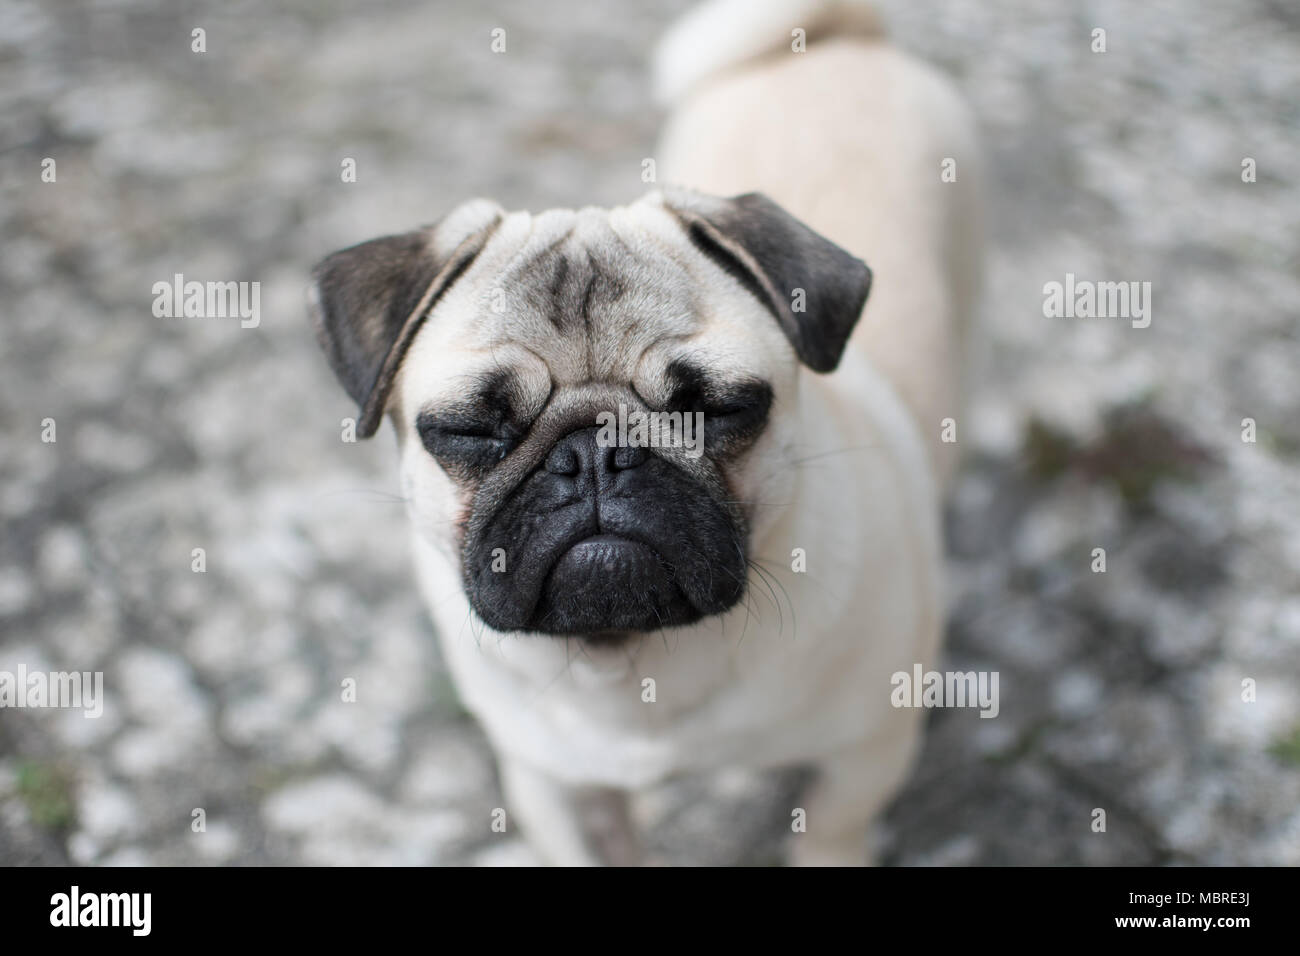 Titan the boy Pug puppy looking upwards with his eyes closed Stock Photo